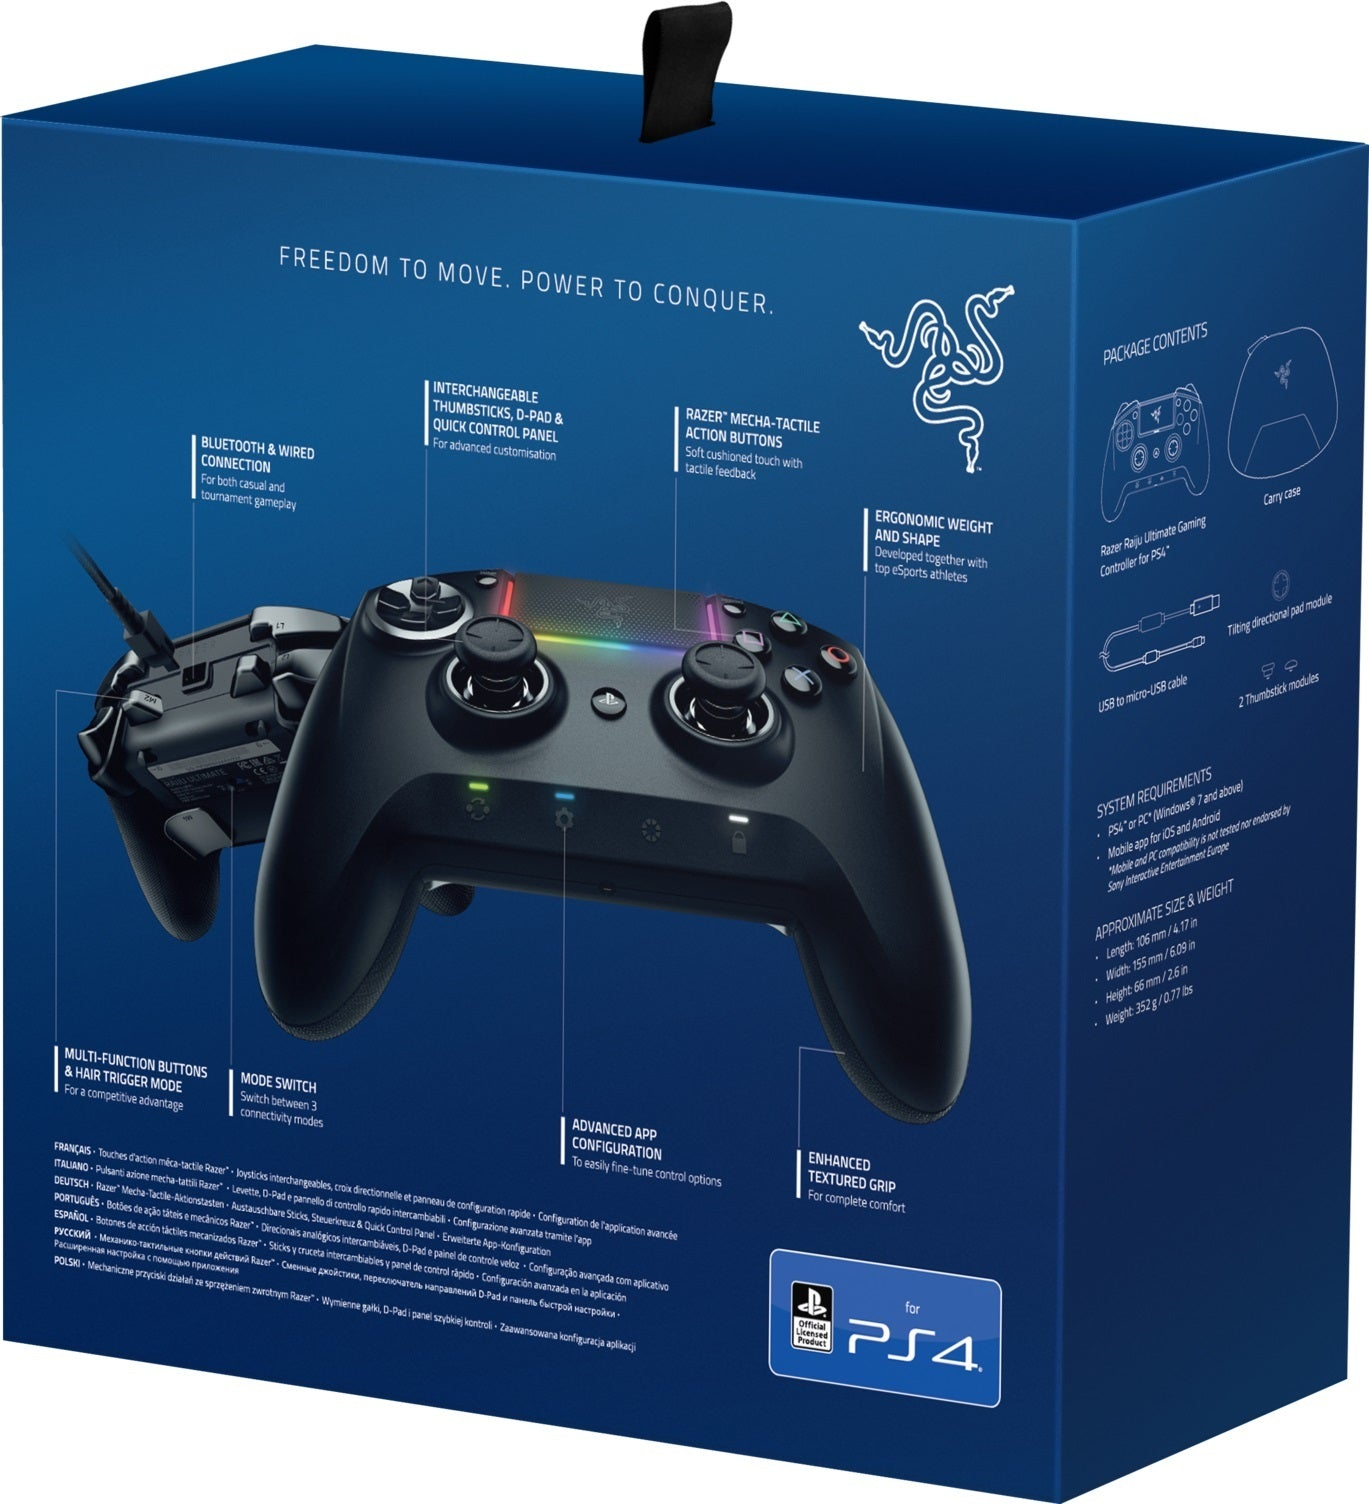 Razer Raiju Wireless Ultimate Ps4 Controller Bluetooth Ps4 The dualshock 4 ps4 wireless controller is a fantastic gamepad that improves on the classic dualshock form factor in all the right ways. razer